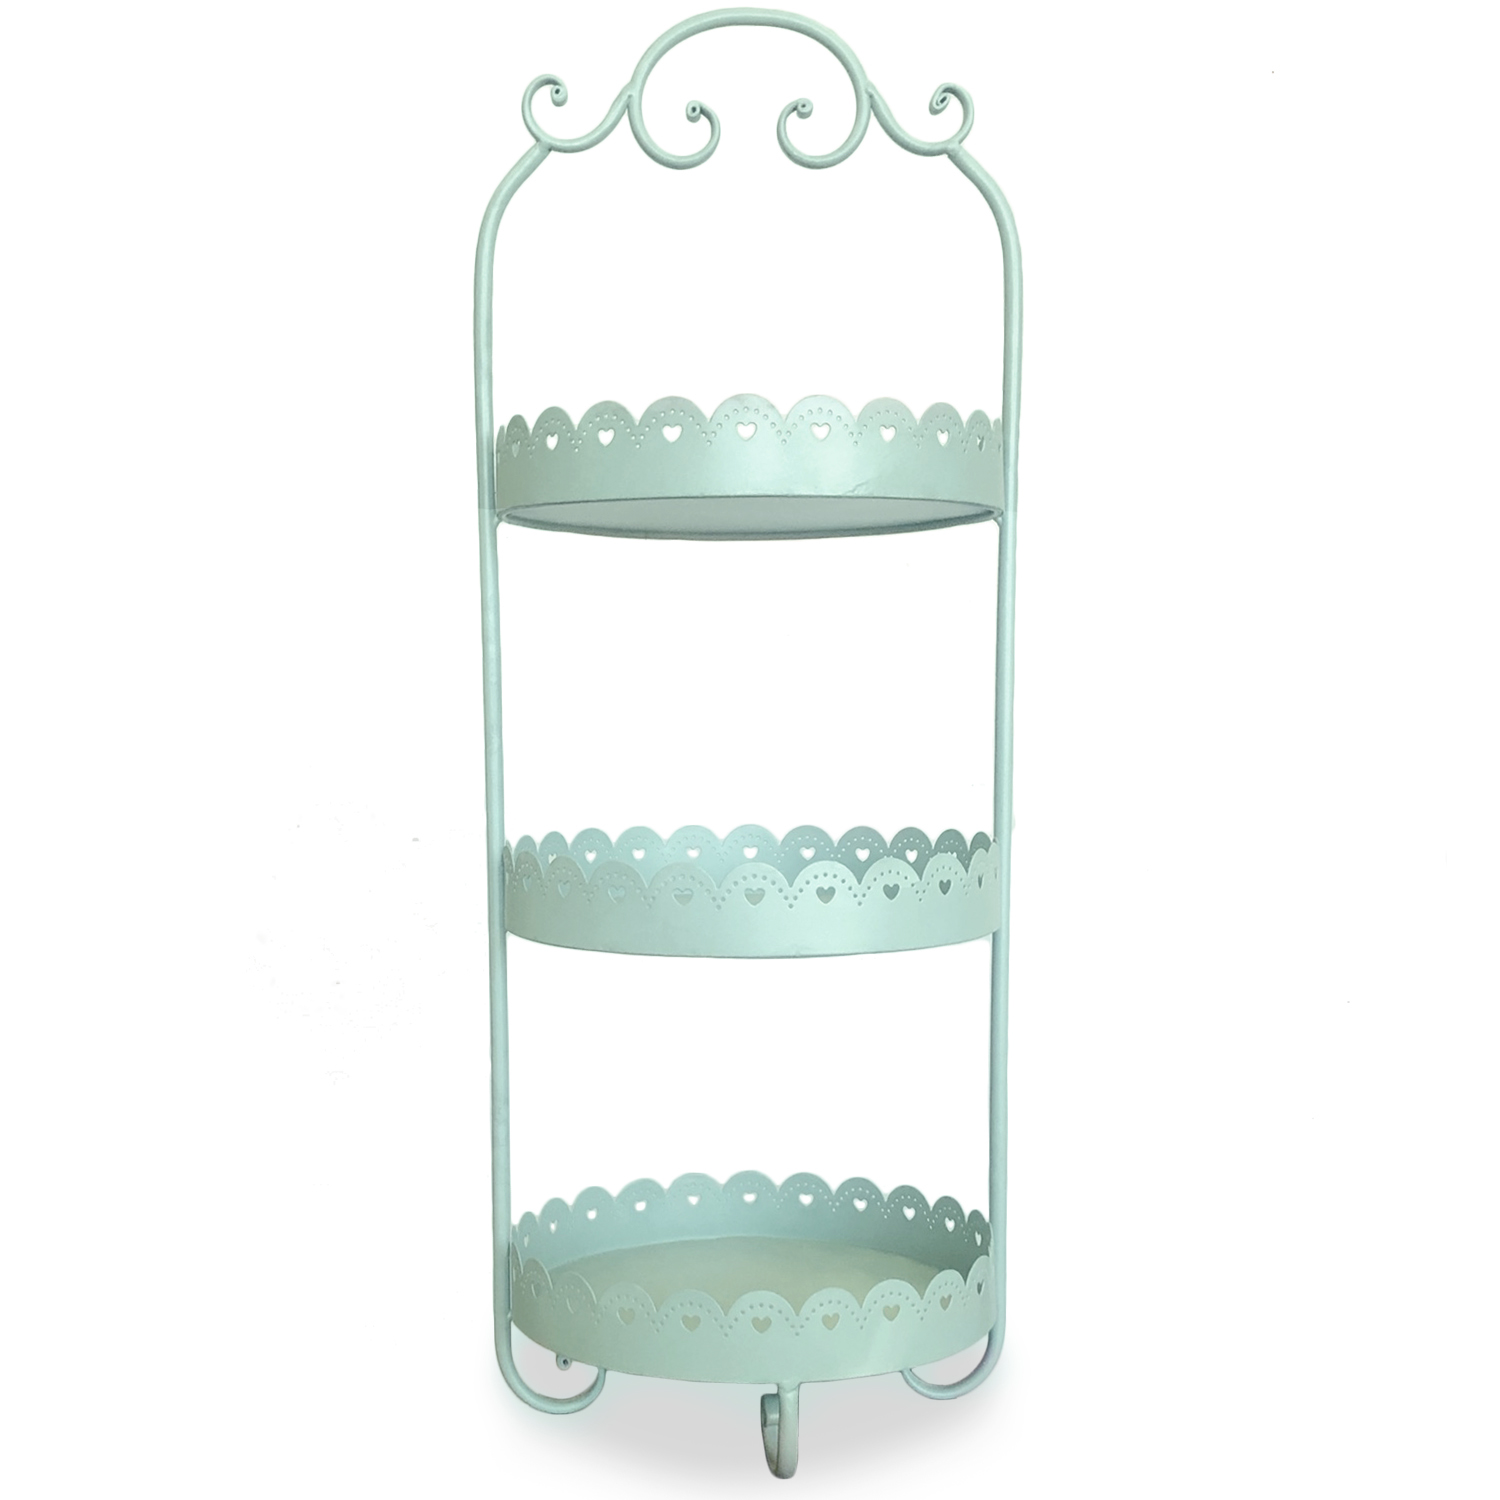 Round Metal Three Tiered Display Stand - Mint Blue